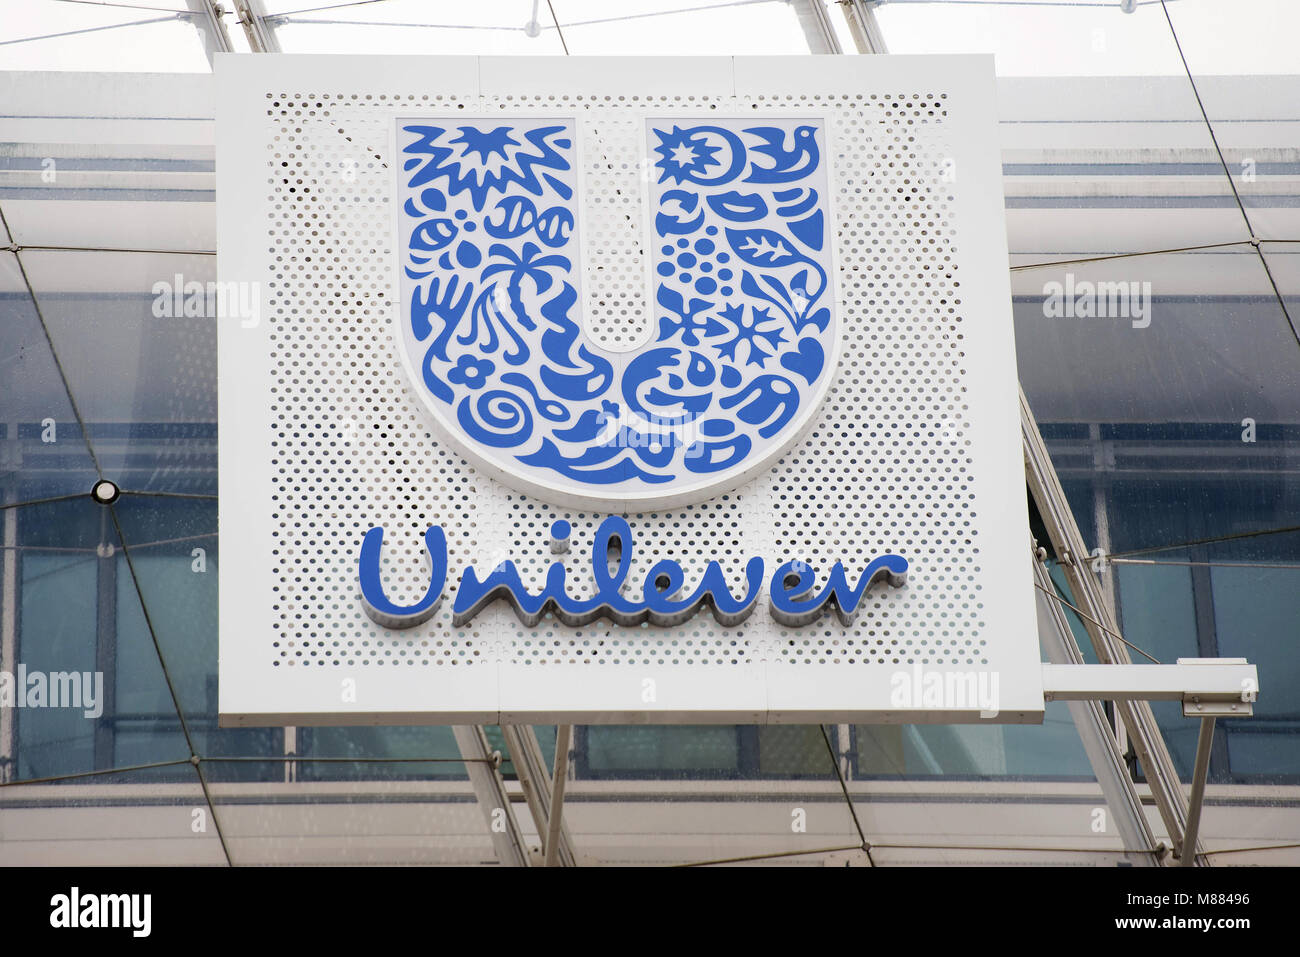 Unilever logo stock photos unilever logo stock images alamy filed 01 august 2017 germany hamburg the unilever logo at the headquarters biocorpaavc Images